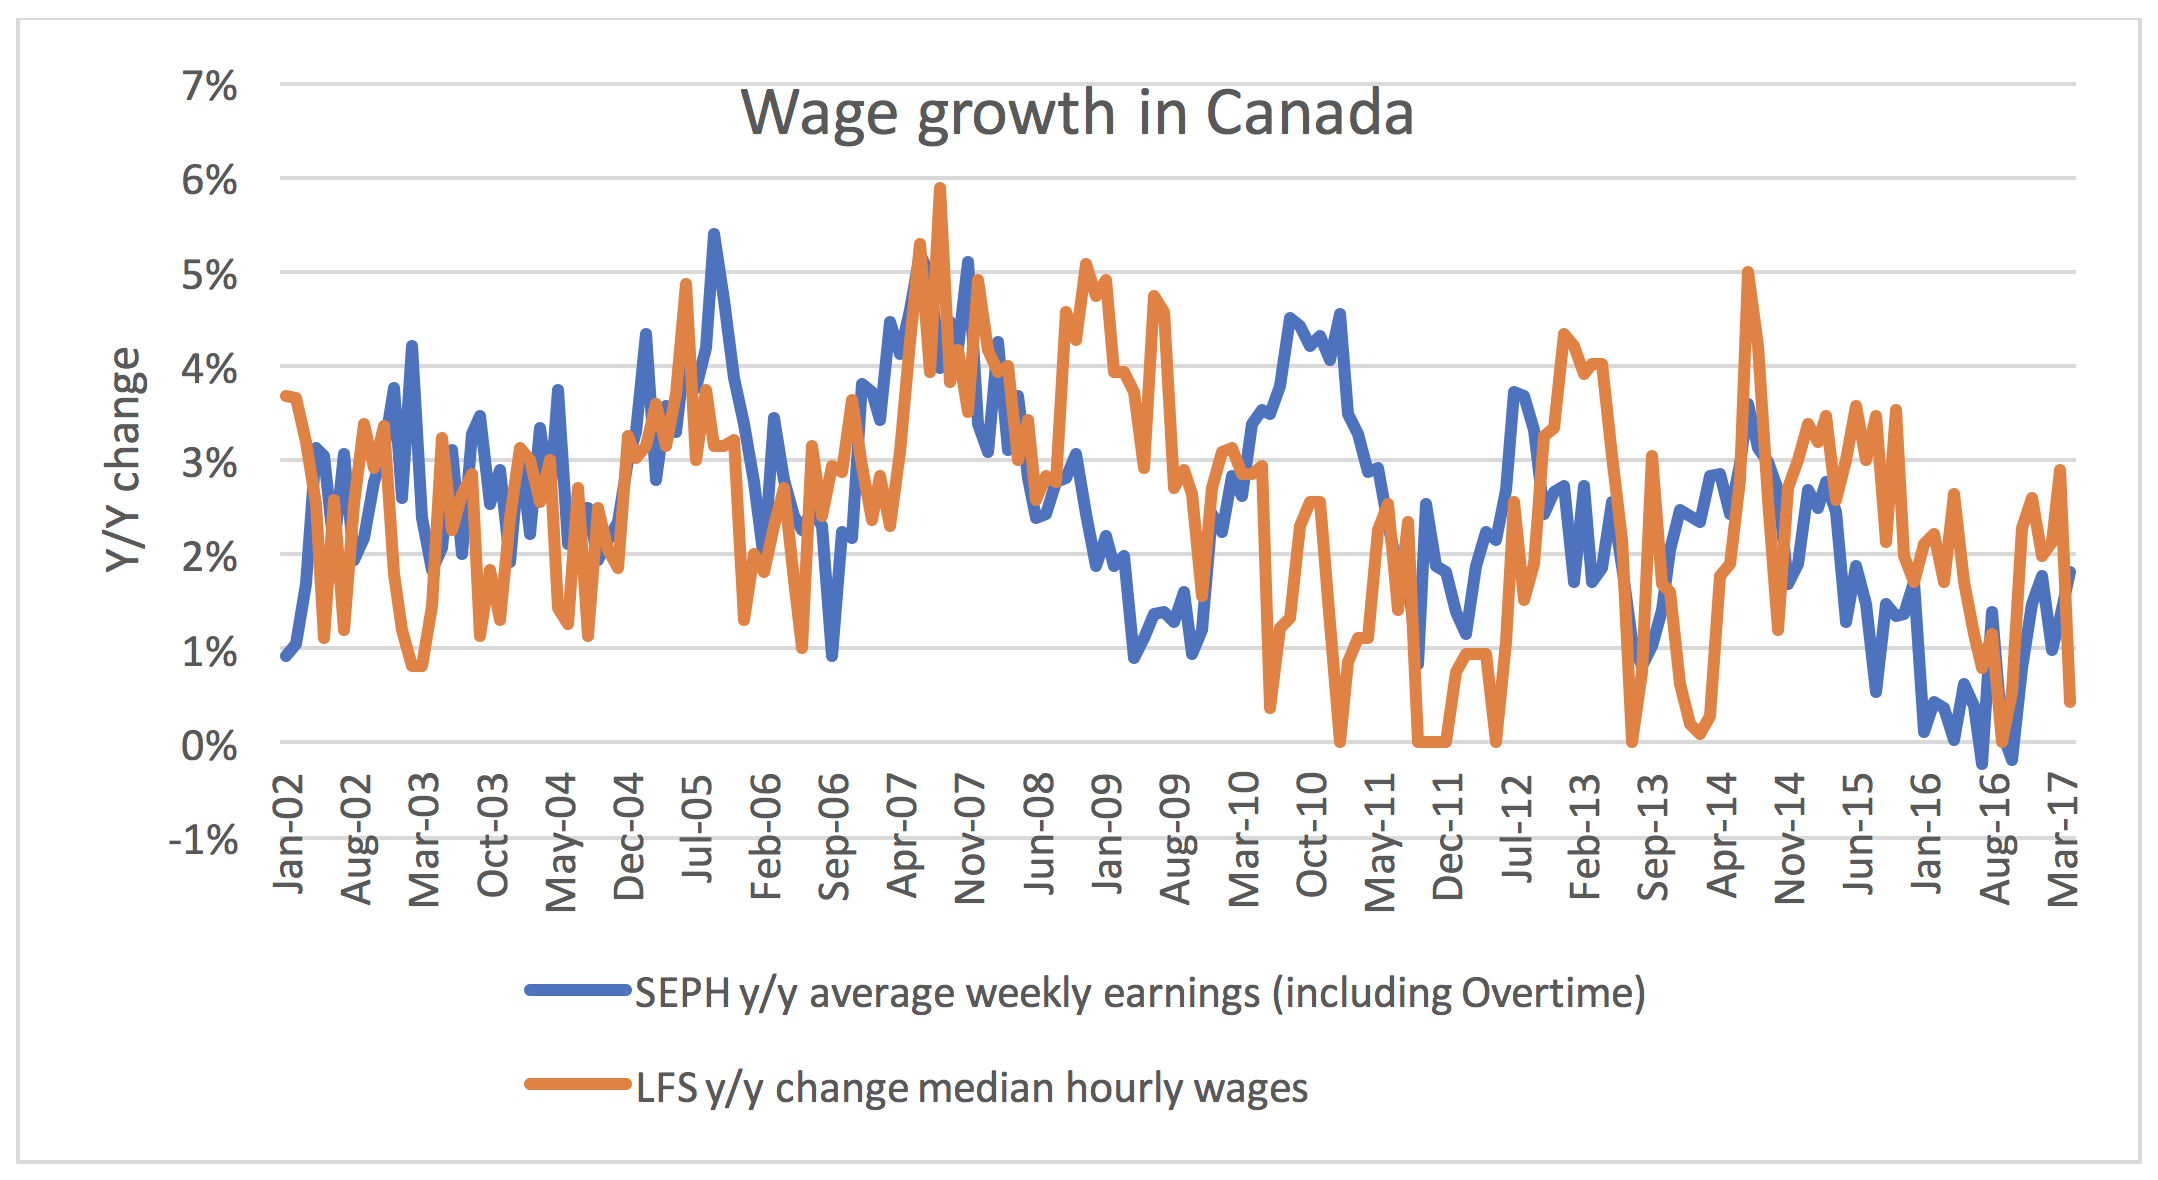 Wage growth in Canada